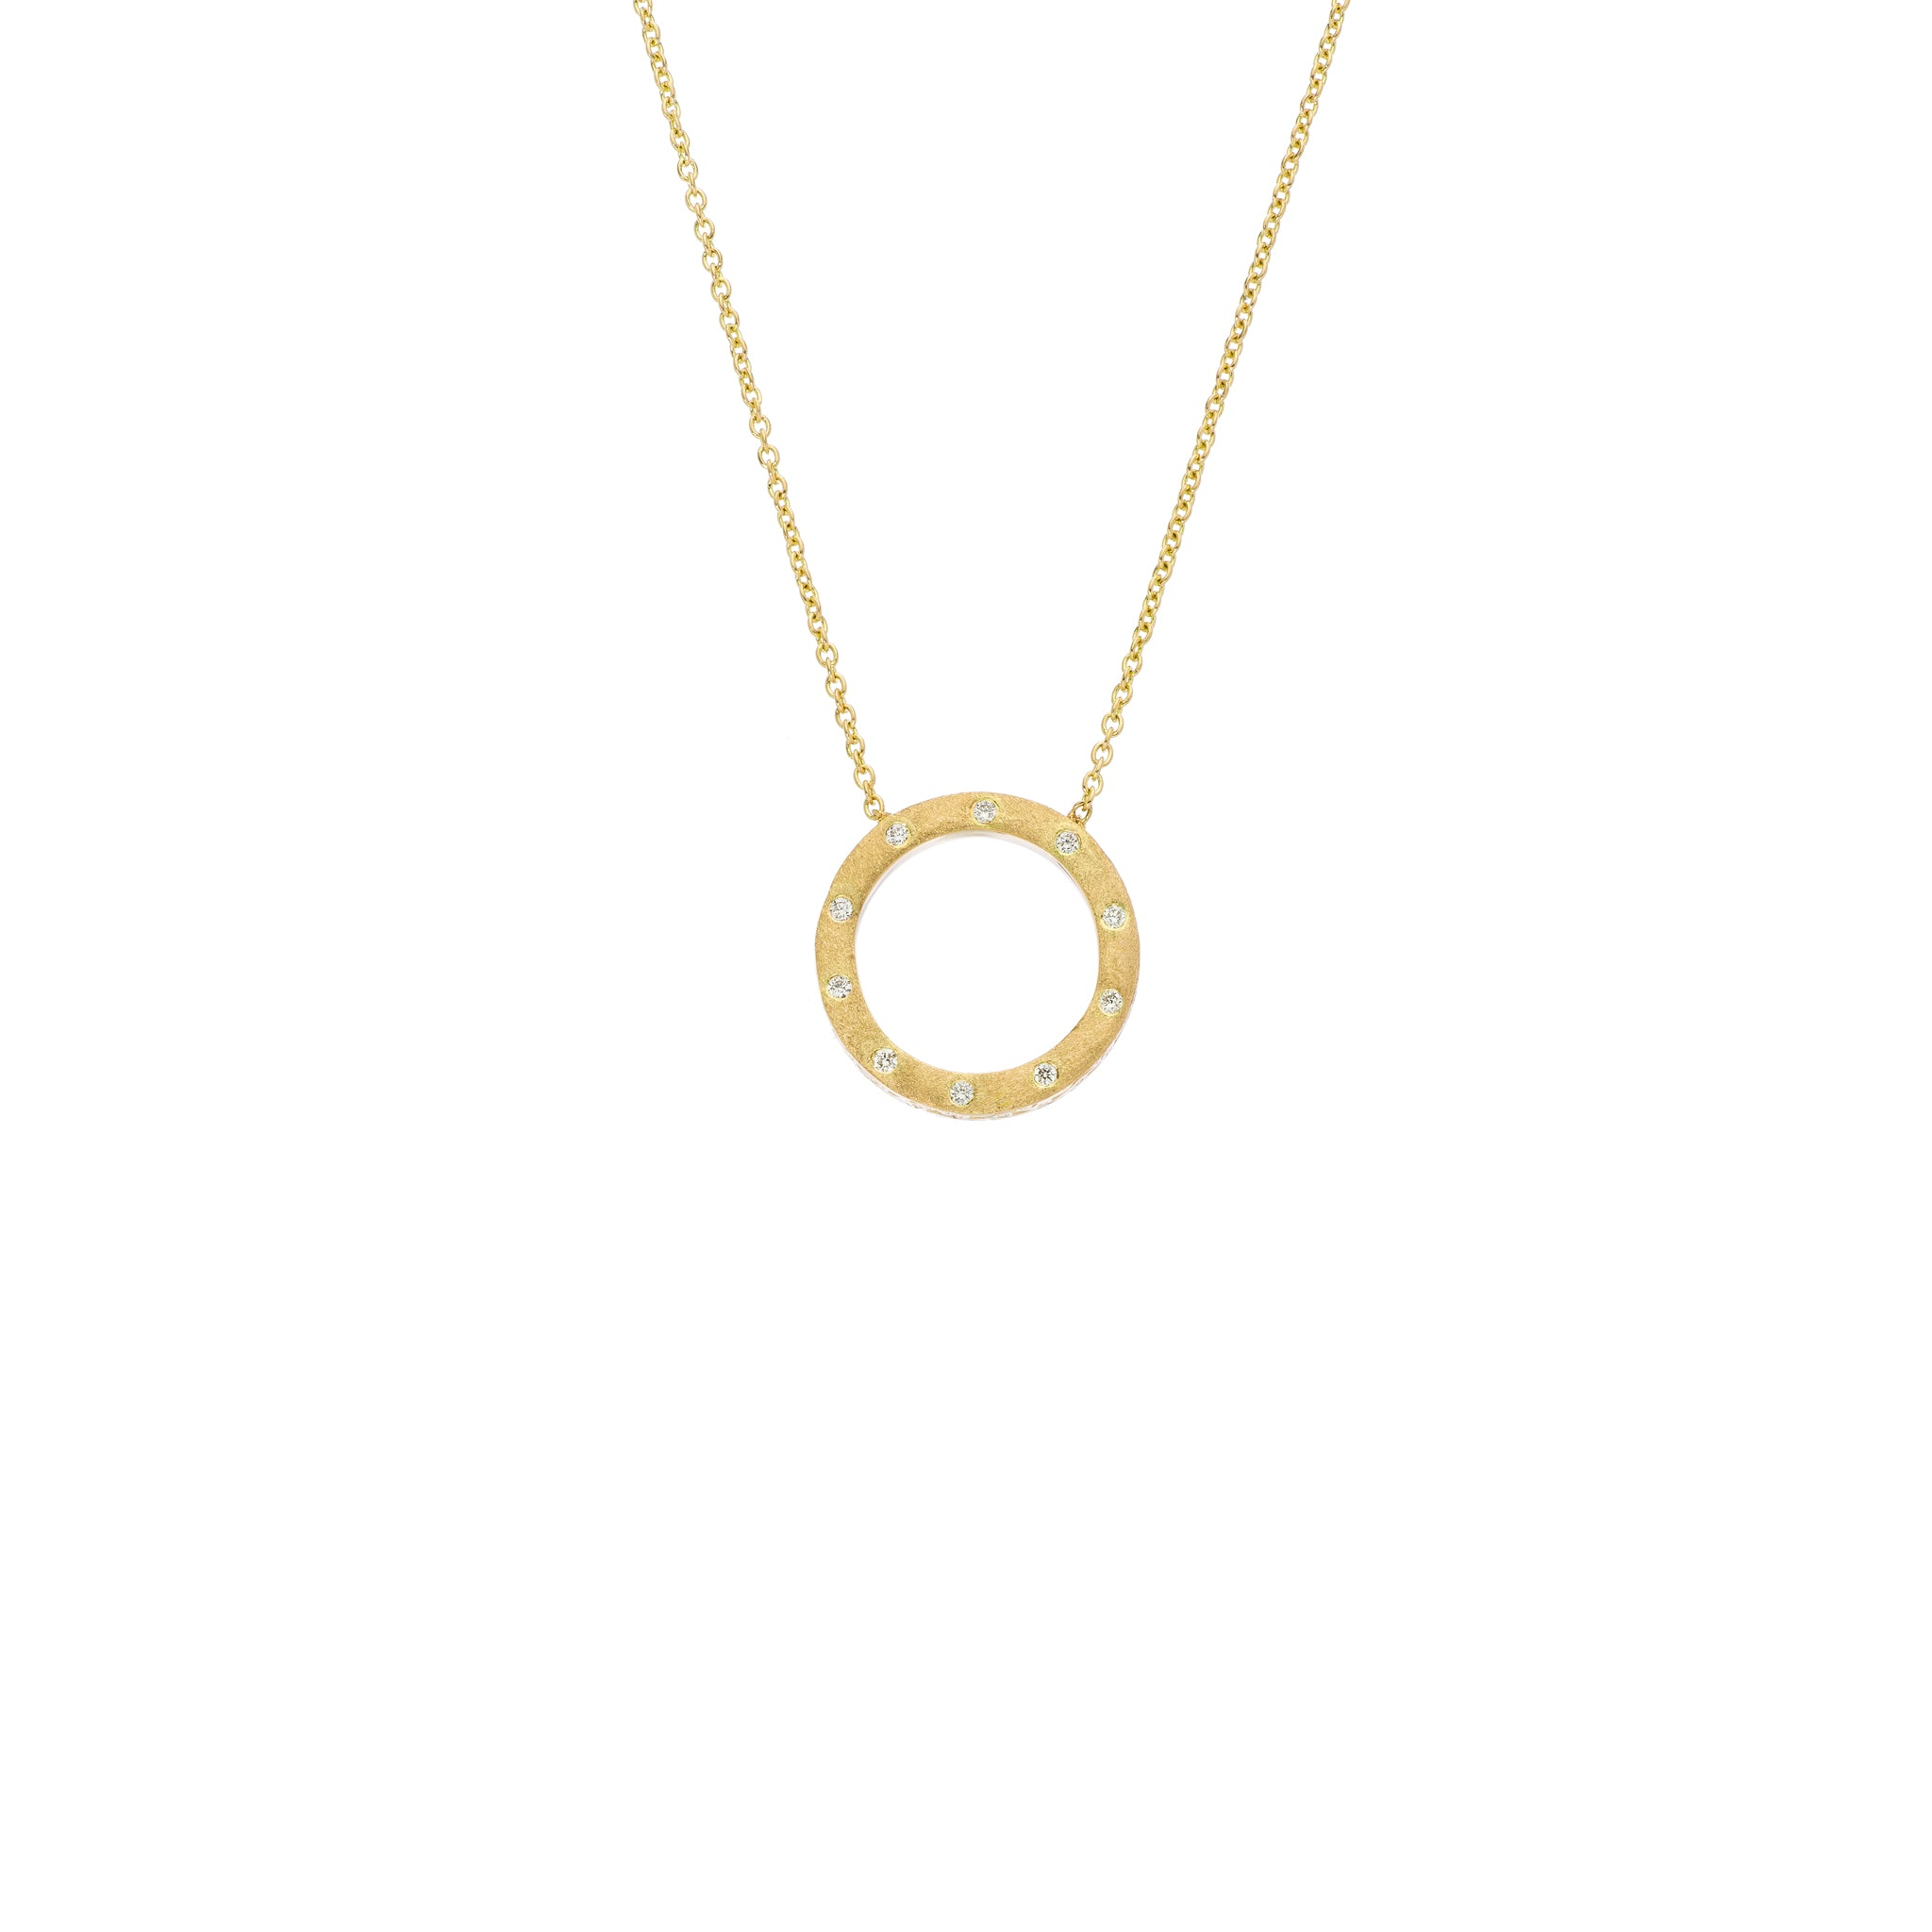 The Dunes Circle - White and Gold - Small